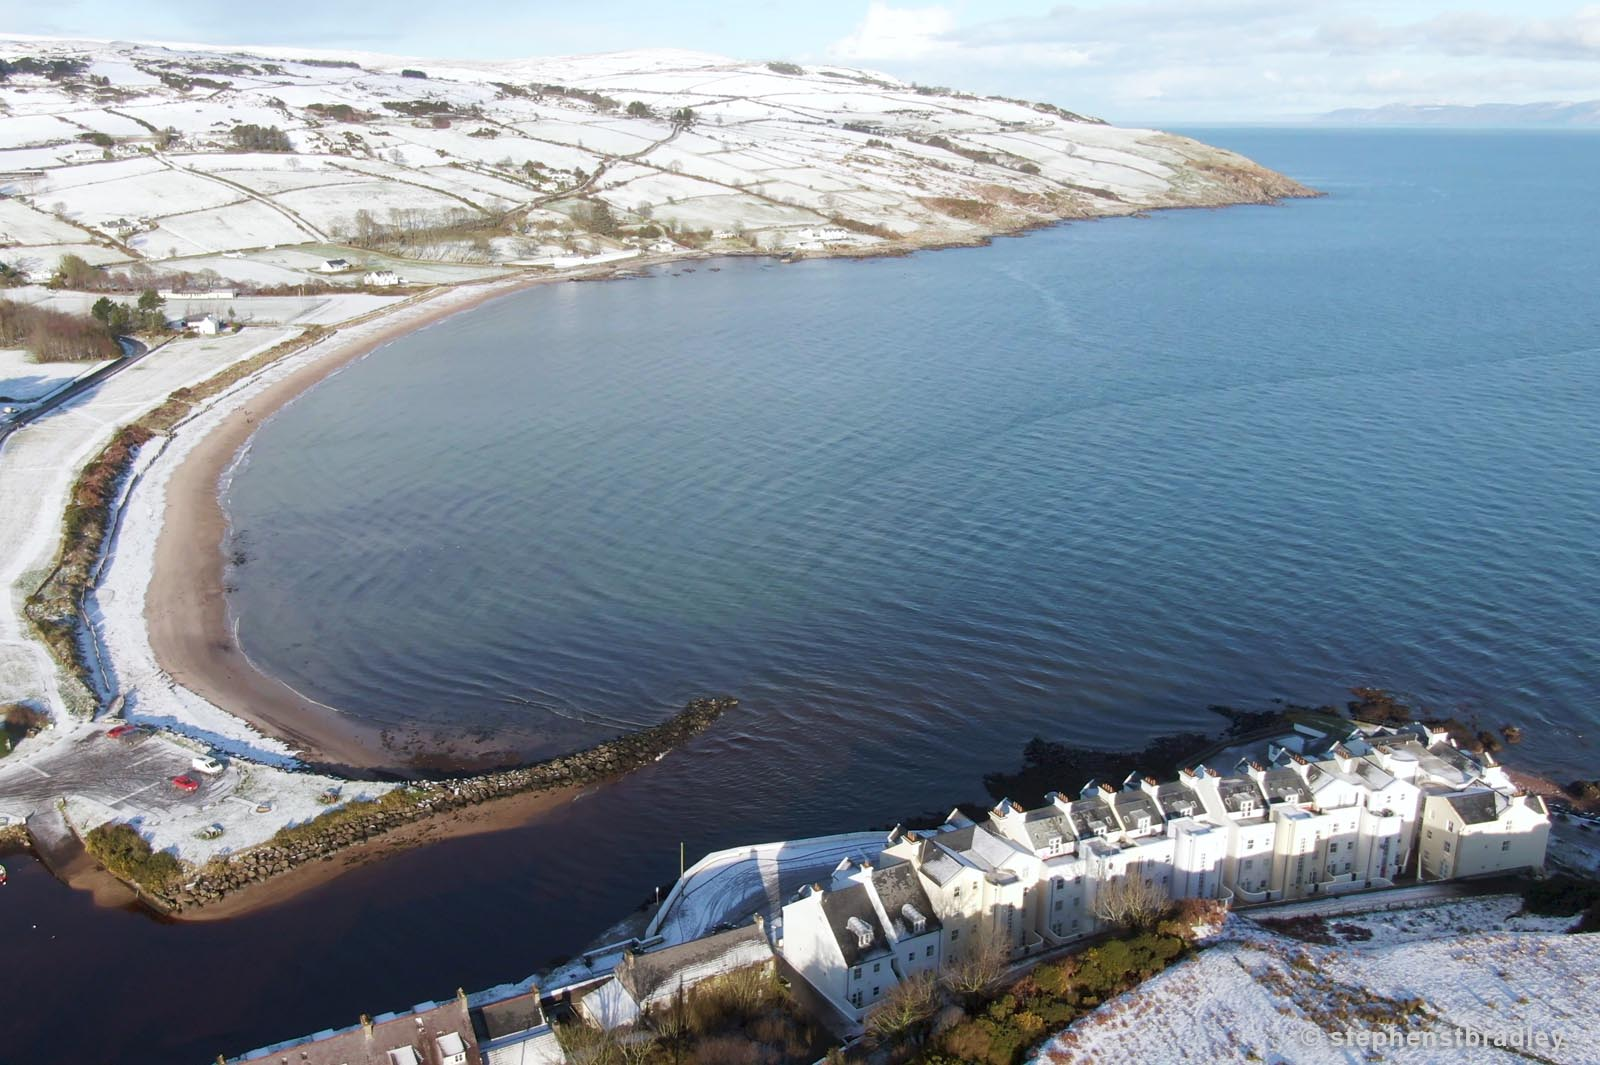 Aerial drone photography and video production services Dublin and Ireland portfolio - Cushendun village under snow in winter, video screenshot 4